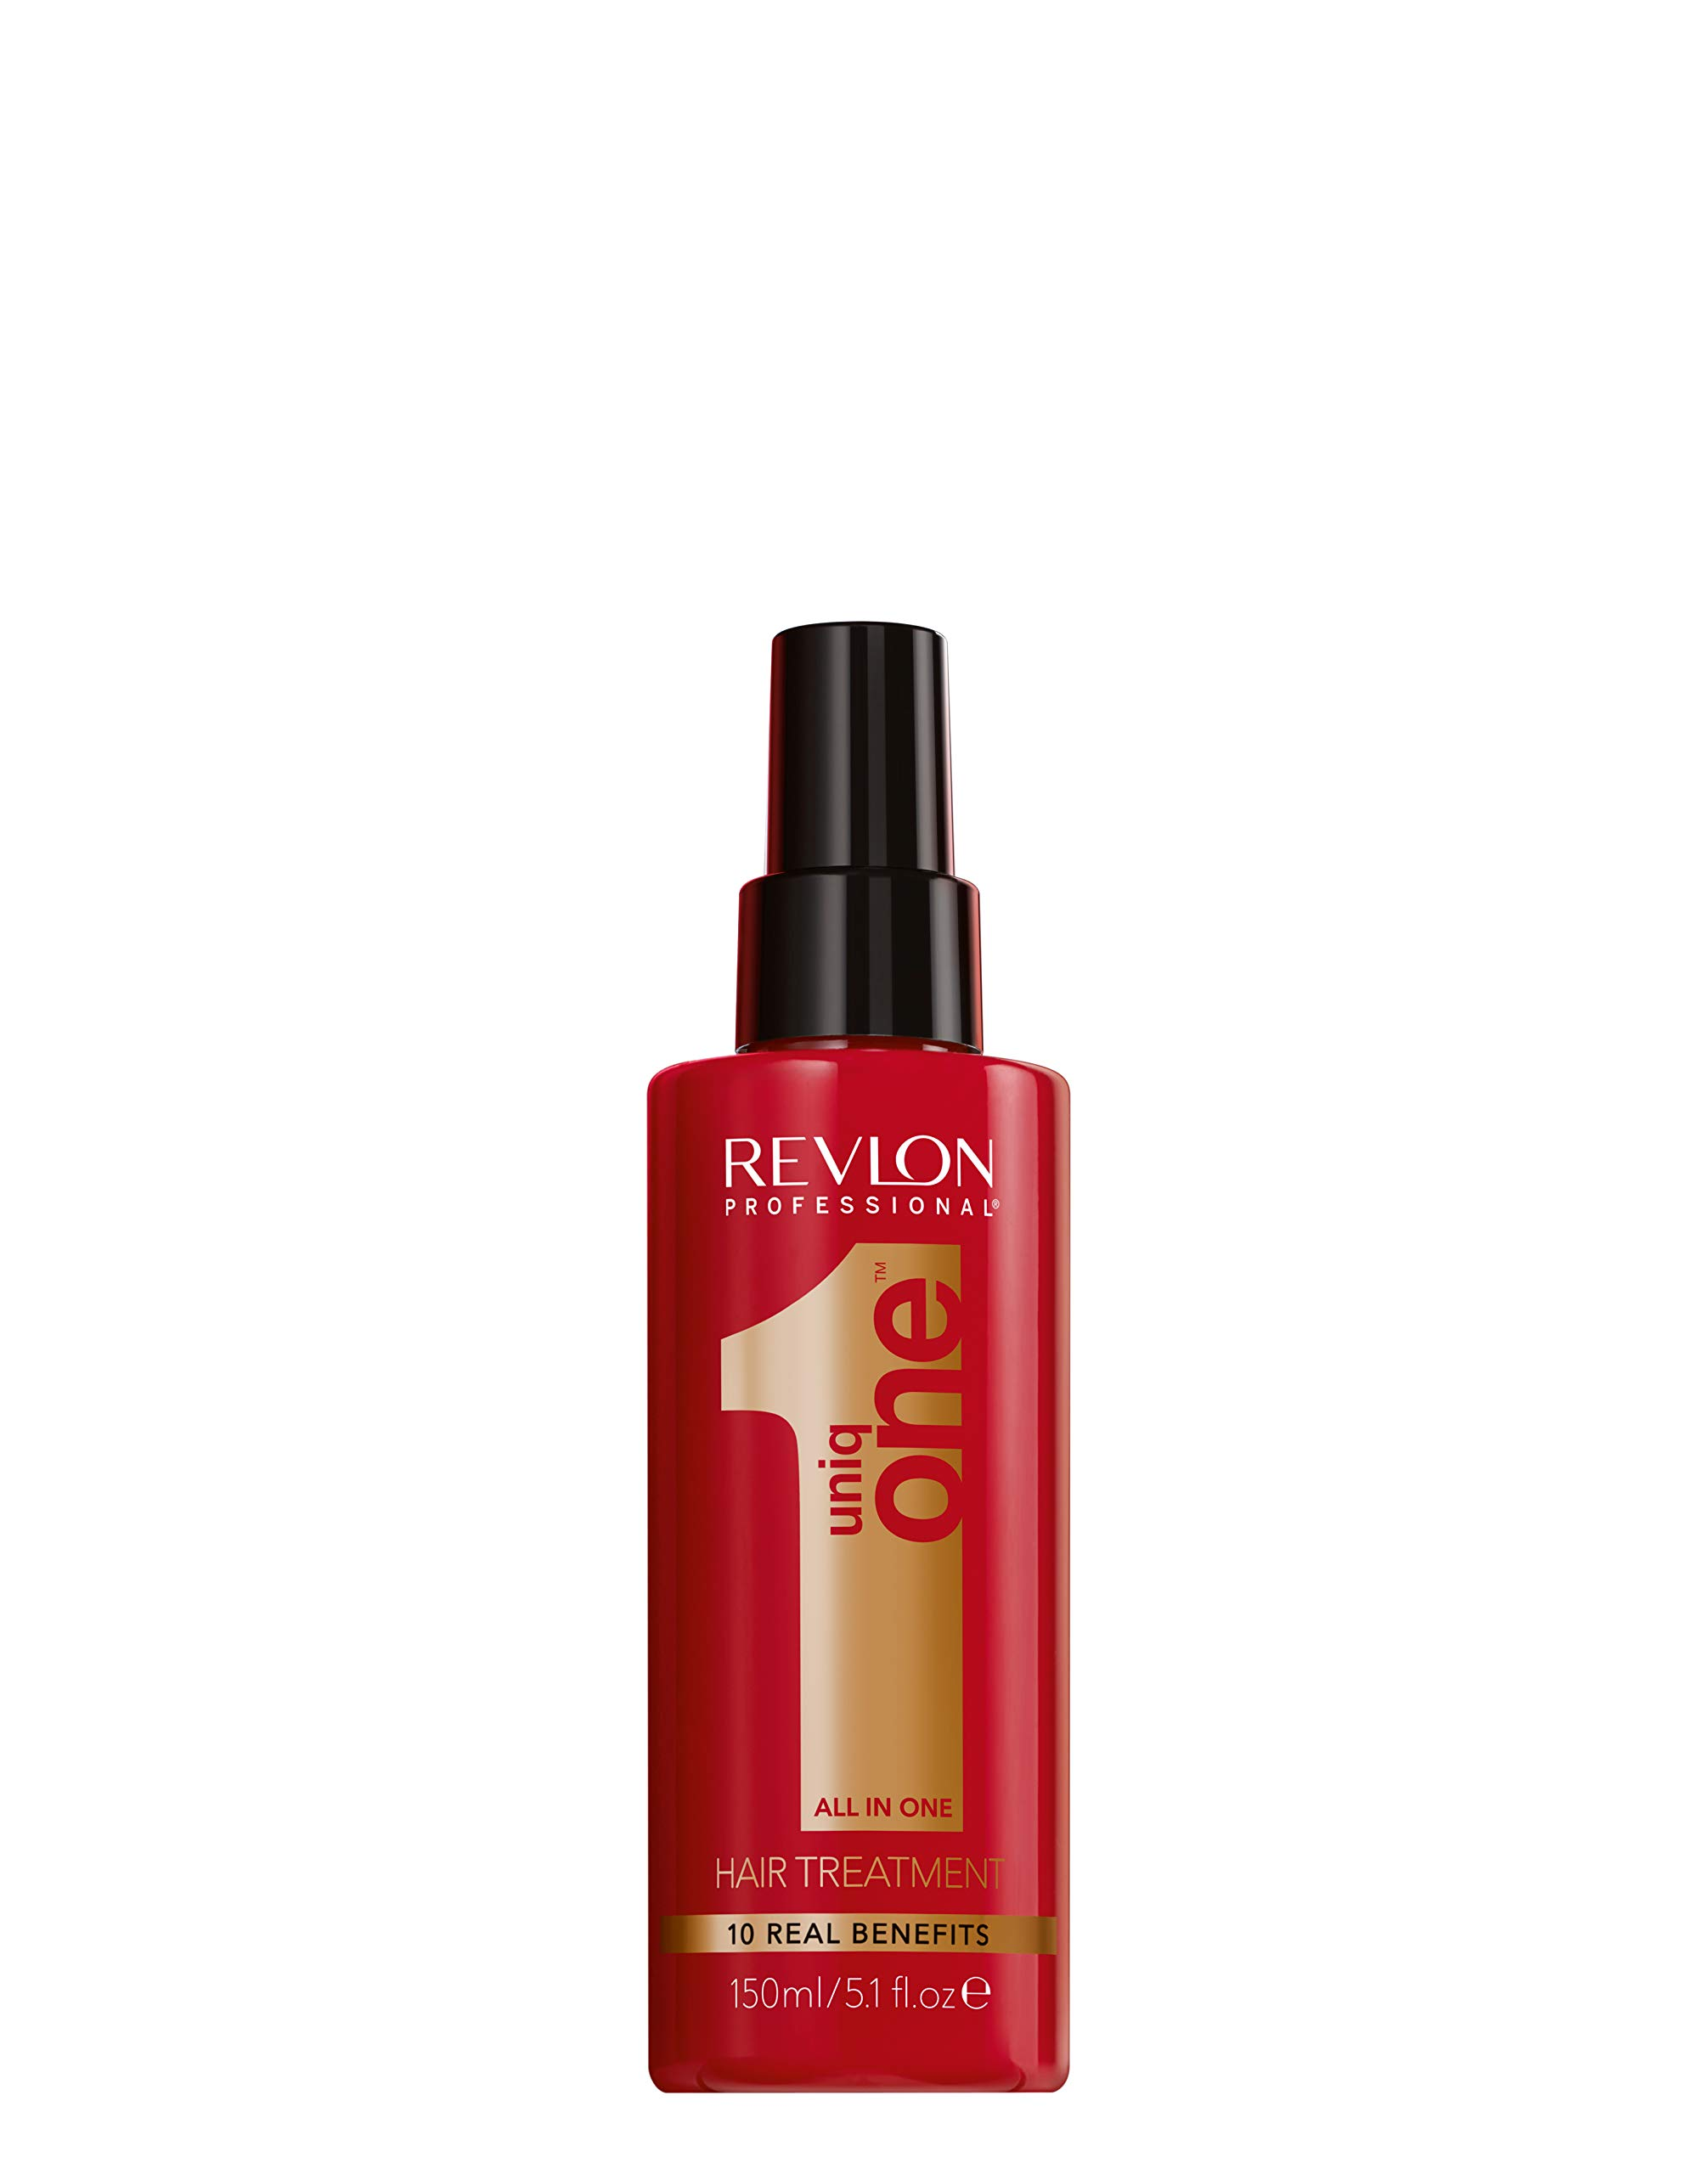 Revlon UniqONE, Tratamiento en Spray para Cabello - 150 ml product image